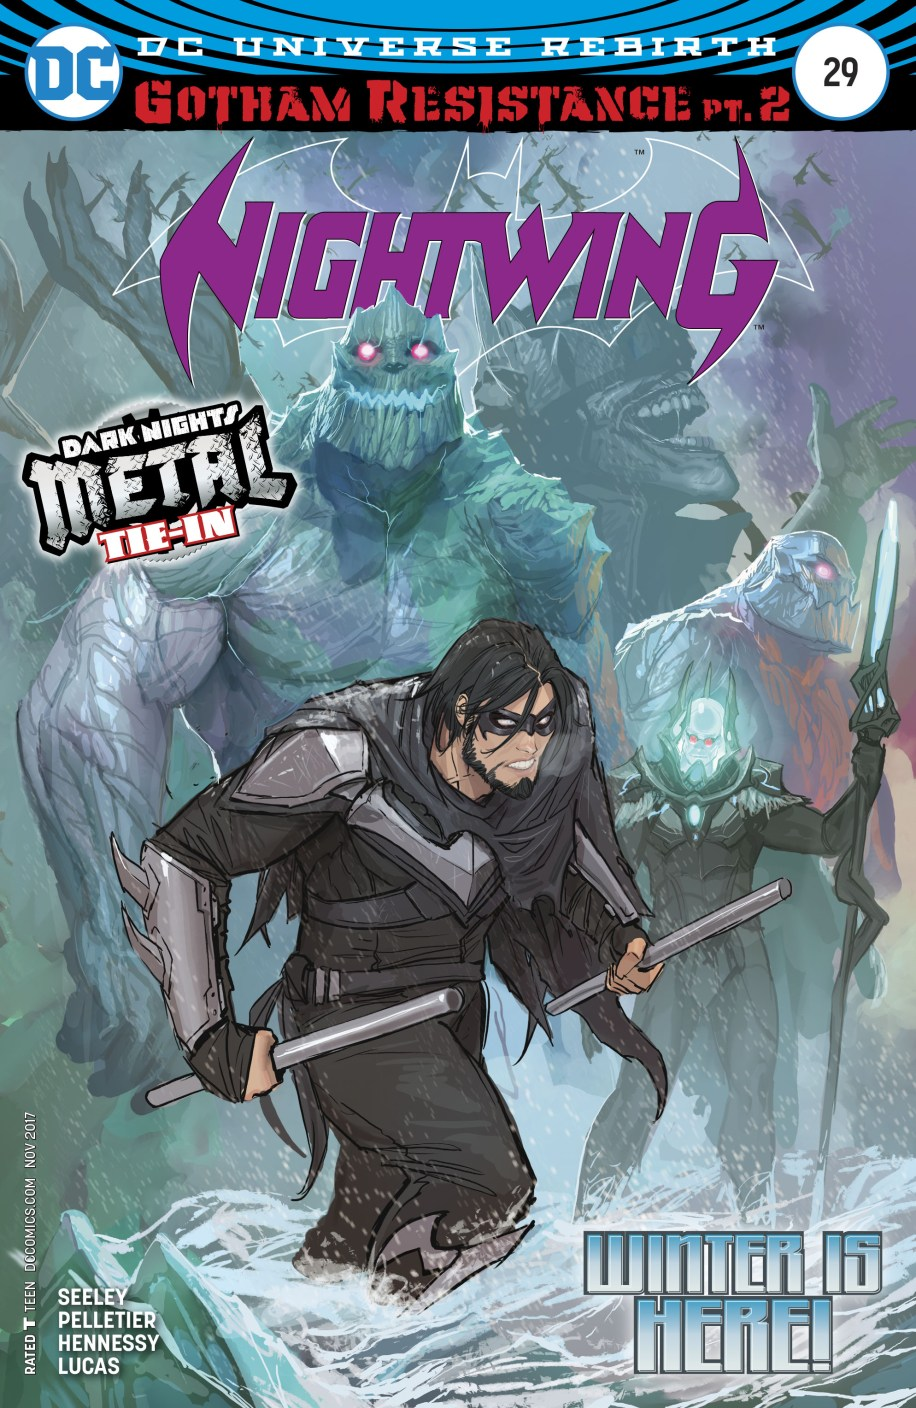 nightwing # 29 spoilers